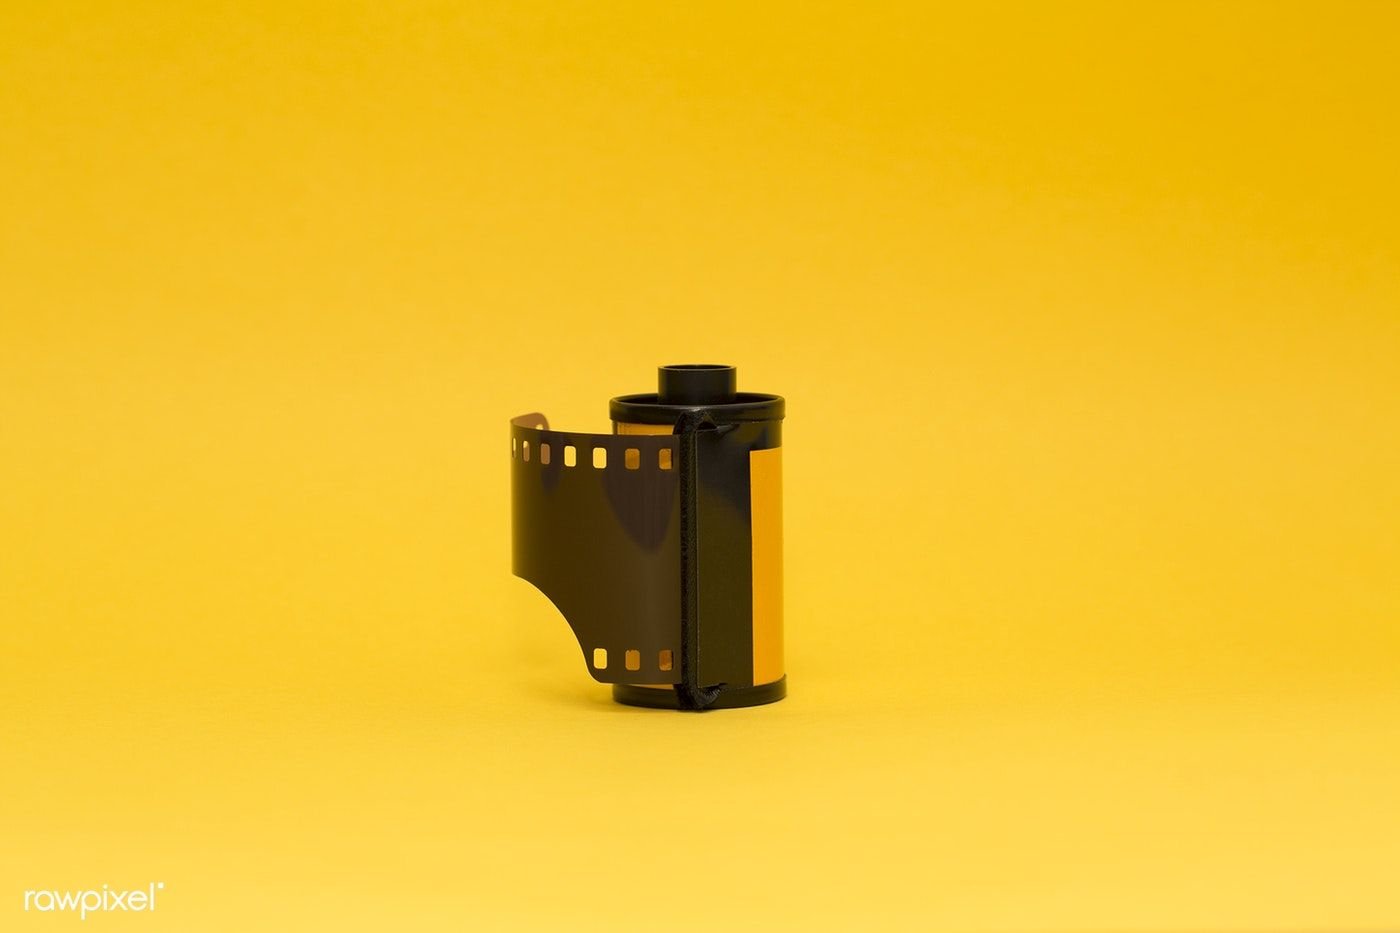 Roll of 35mm film   free image by rawpixel com / Markus